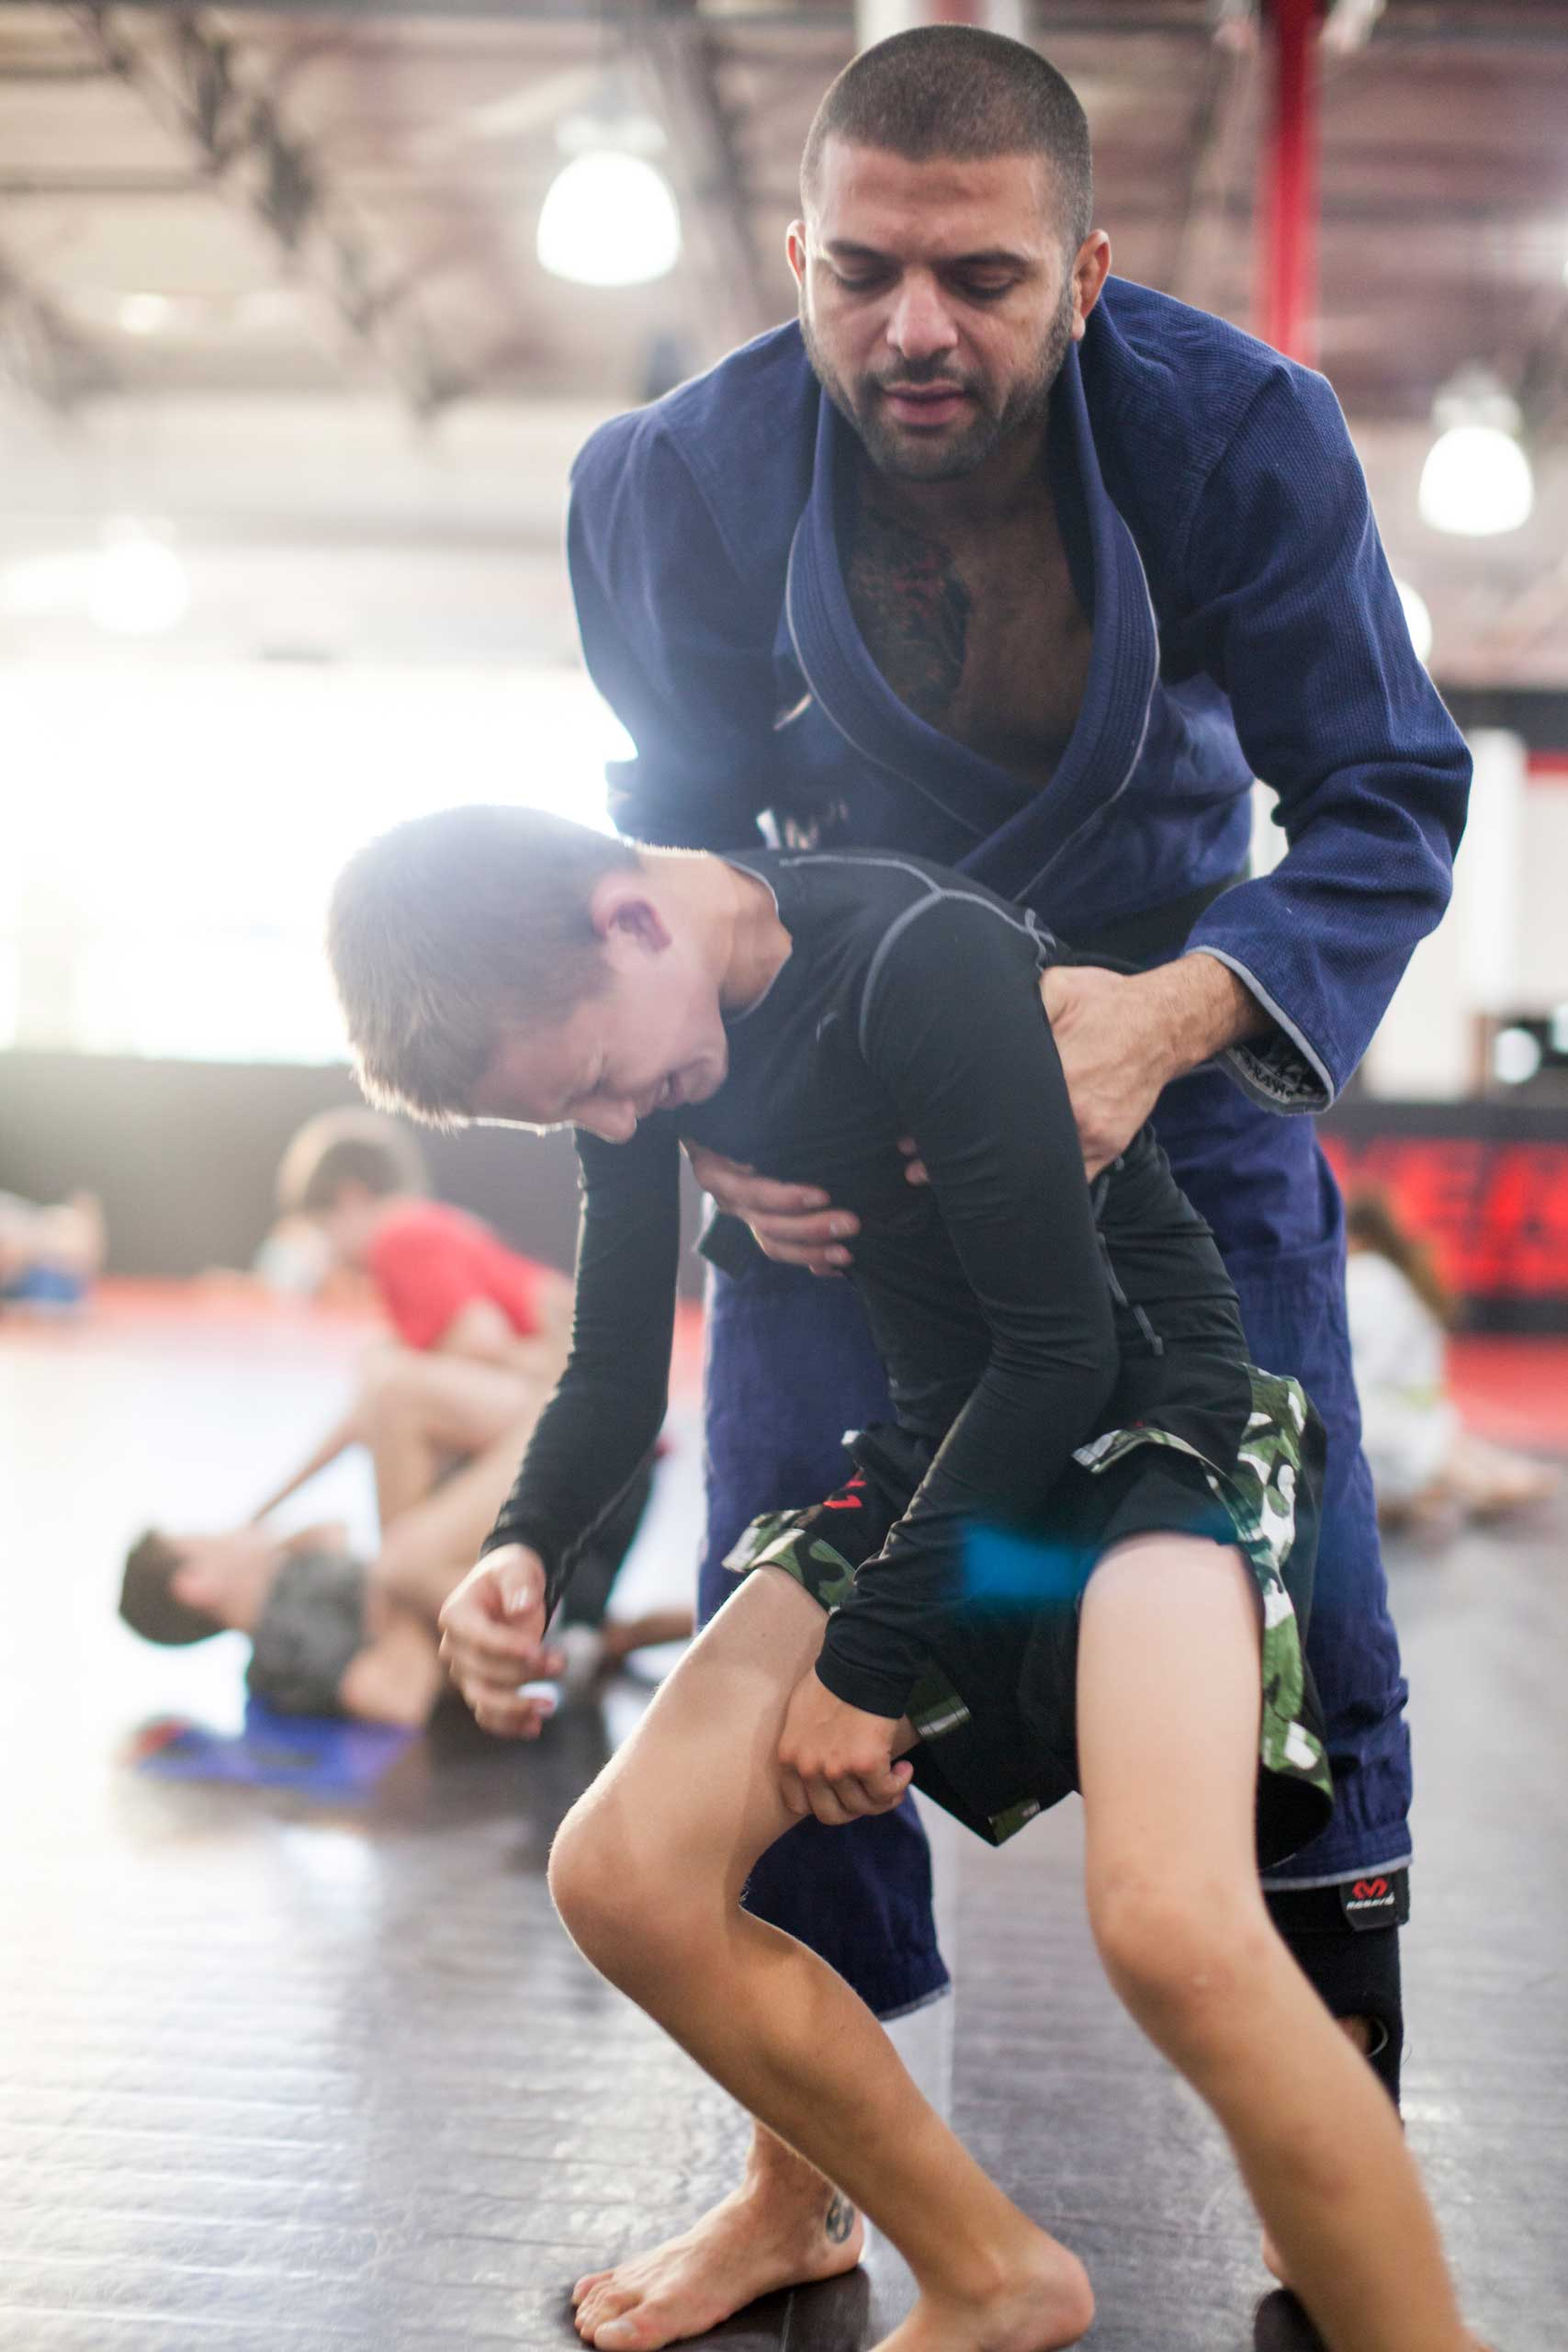 William Reid, 10, picked up by his coatch Andre Maracaba at a practice at Power mixed martial arts  gym in Phoenix, Arizona. Some times whilst training, kids might sprain a limb, but some times it's just mental stress and tiredness that triggers them in to tears, Oct. 2013.